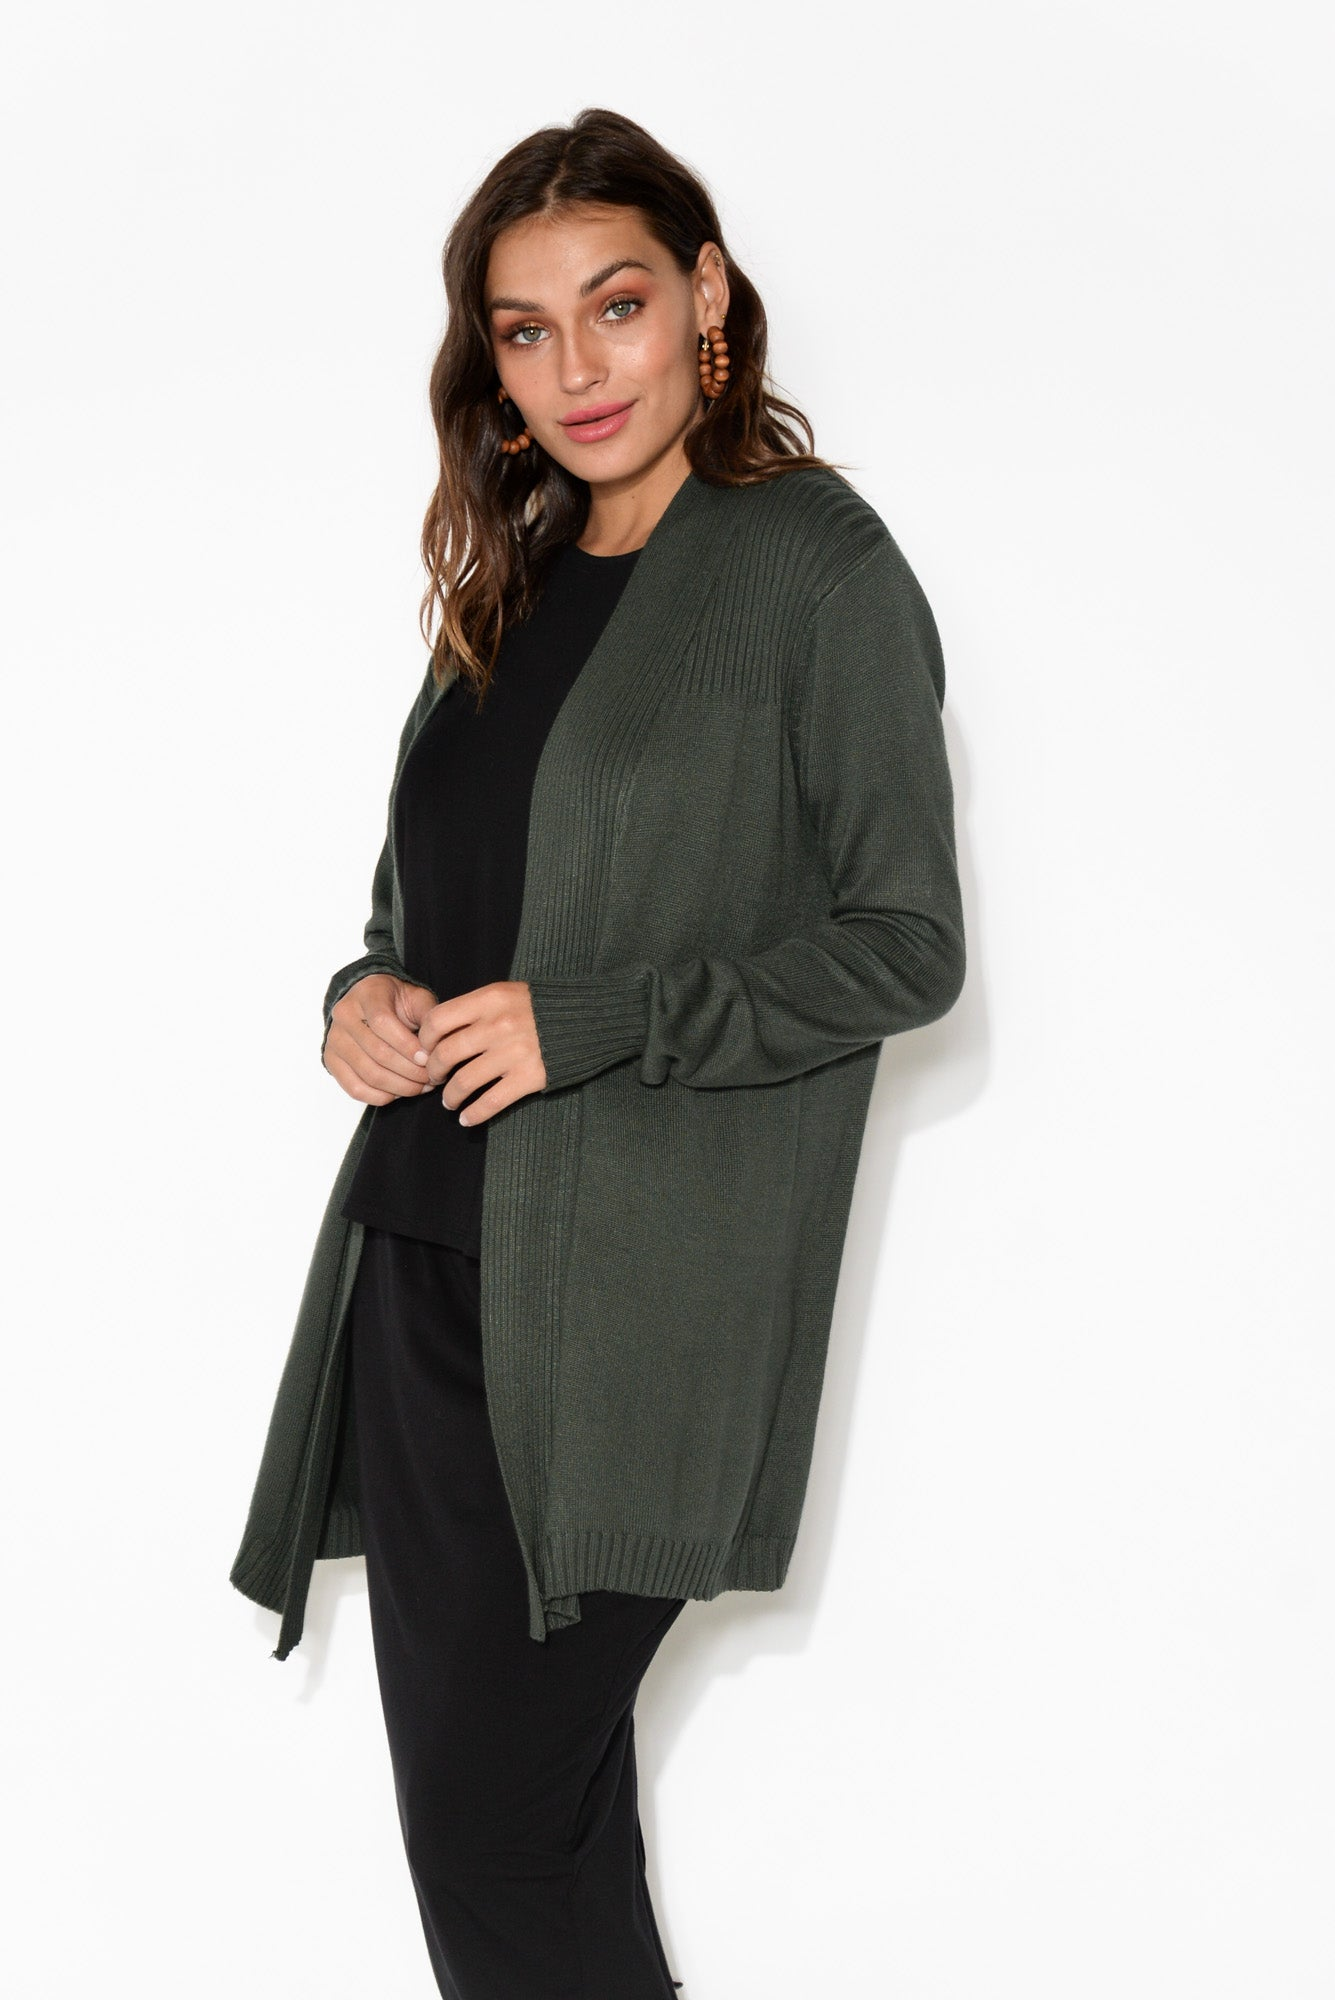 Campbell Emerald Green Knit Cotton Cardigan